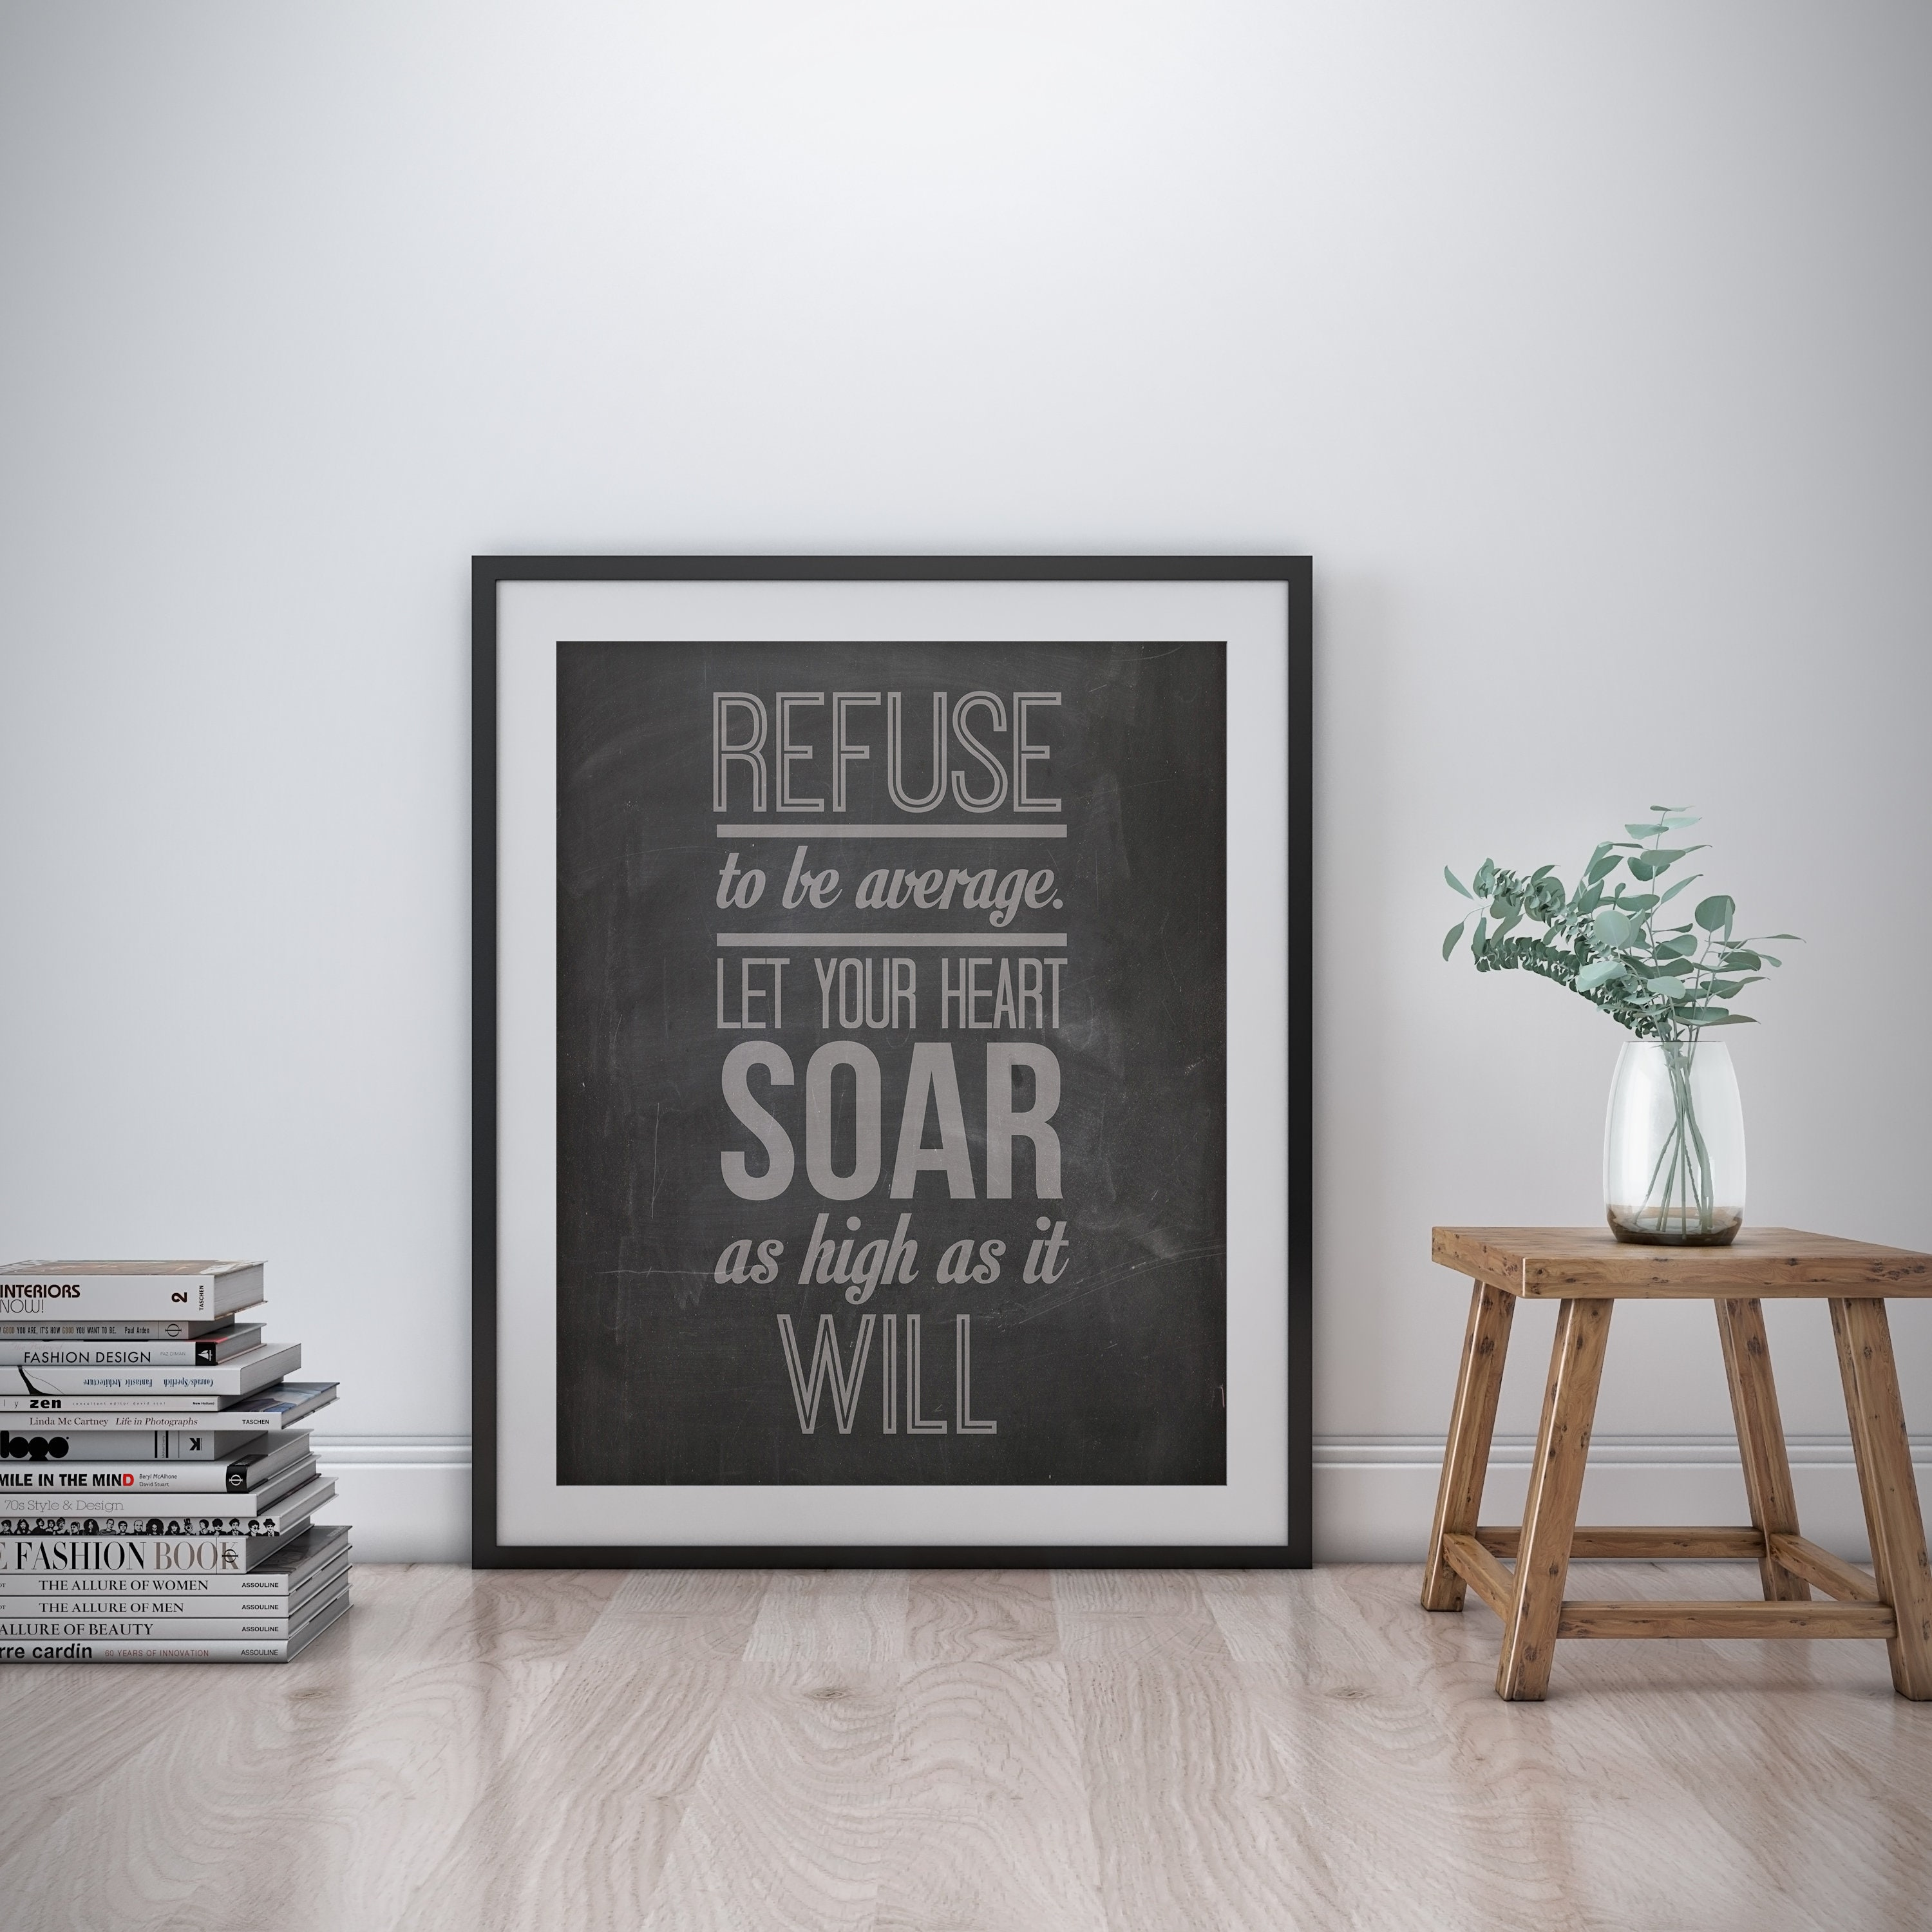 Motivational inspirational quote positive life poster picture print wall art 328